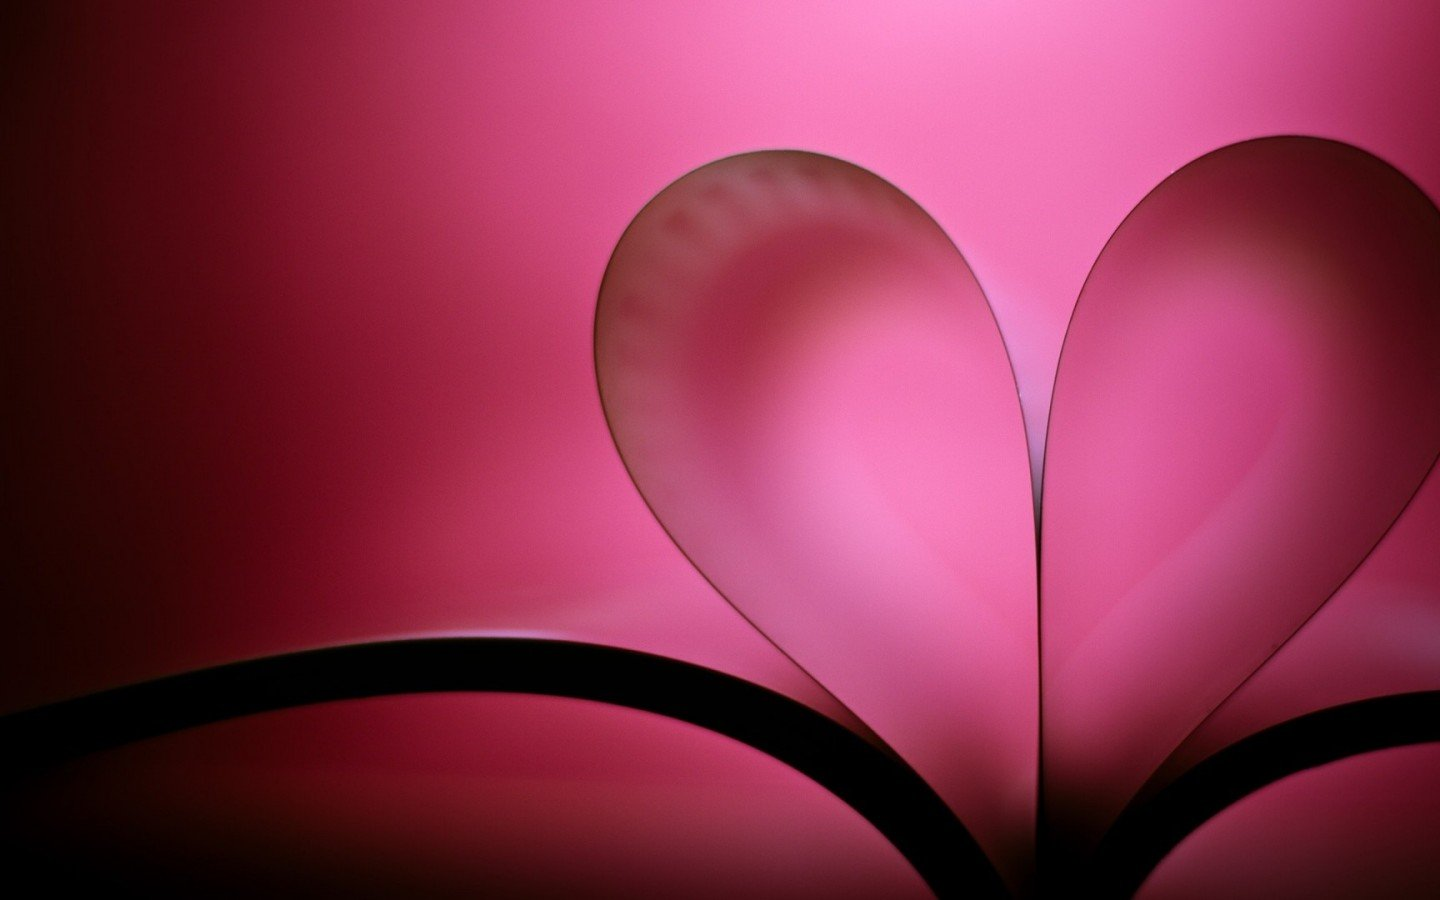 Love Wallpaper For Tablet Hd : HD Love Wallpapers for Laptop - WallpaperSafari